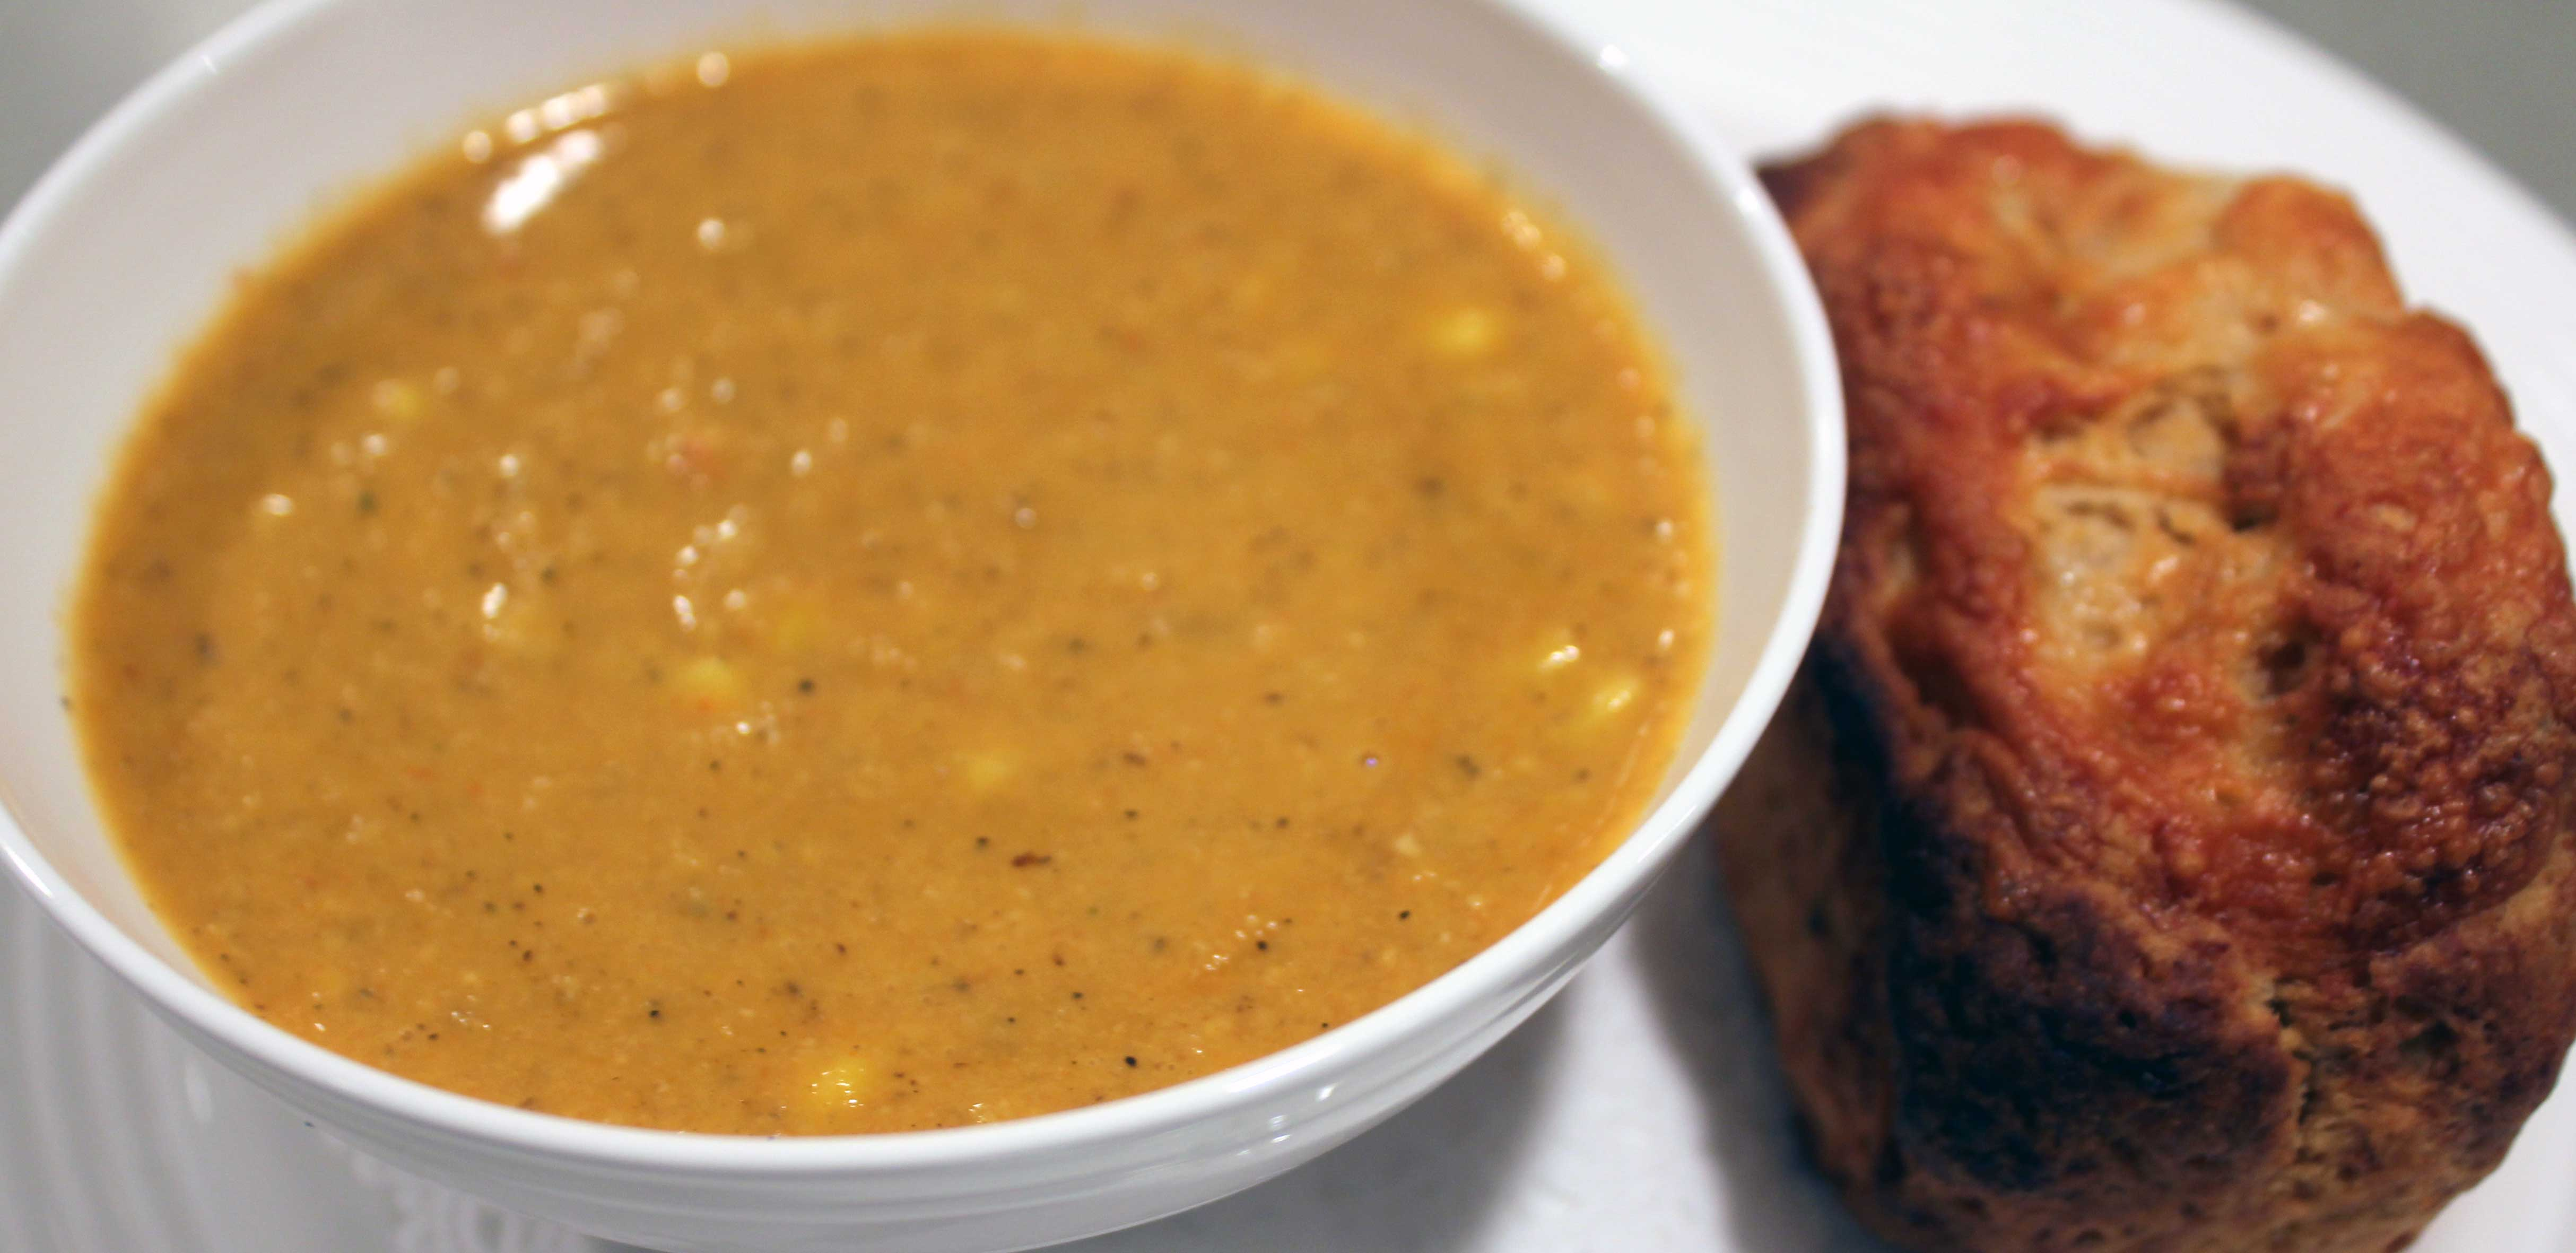 TBT Recipe: Smoky Roasted Corn Soup with Chipotle Chile